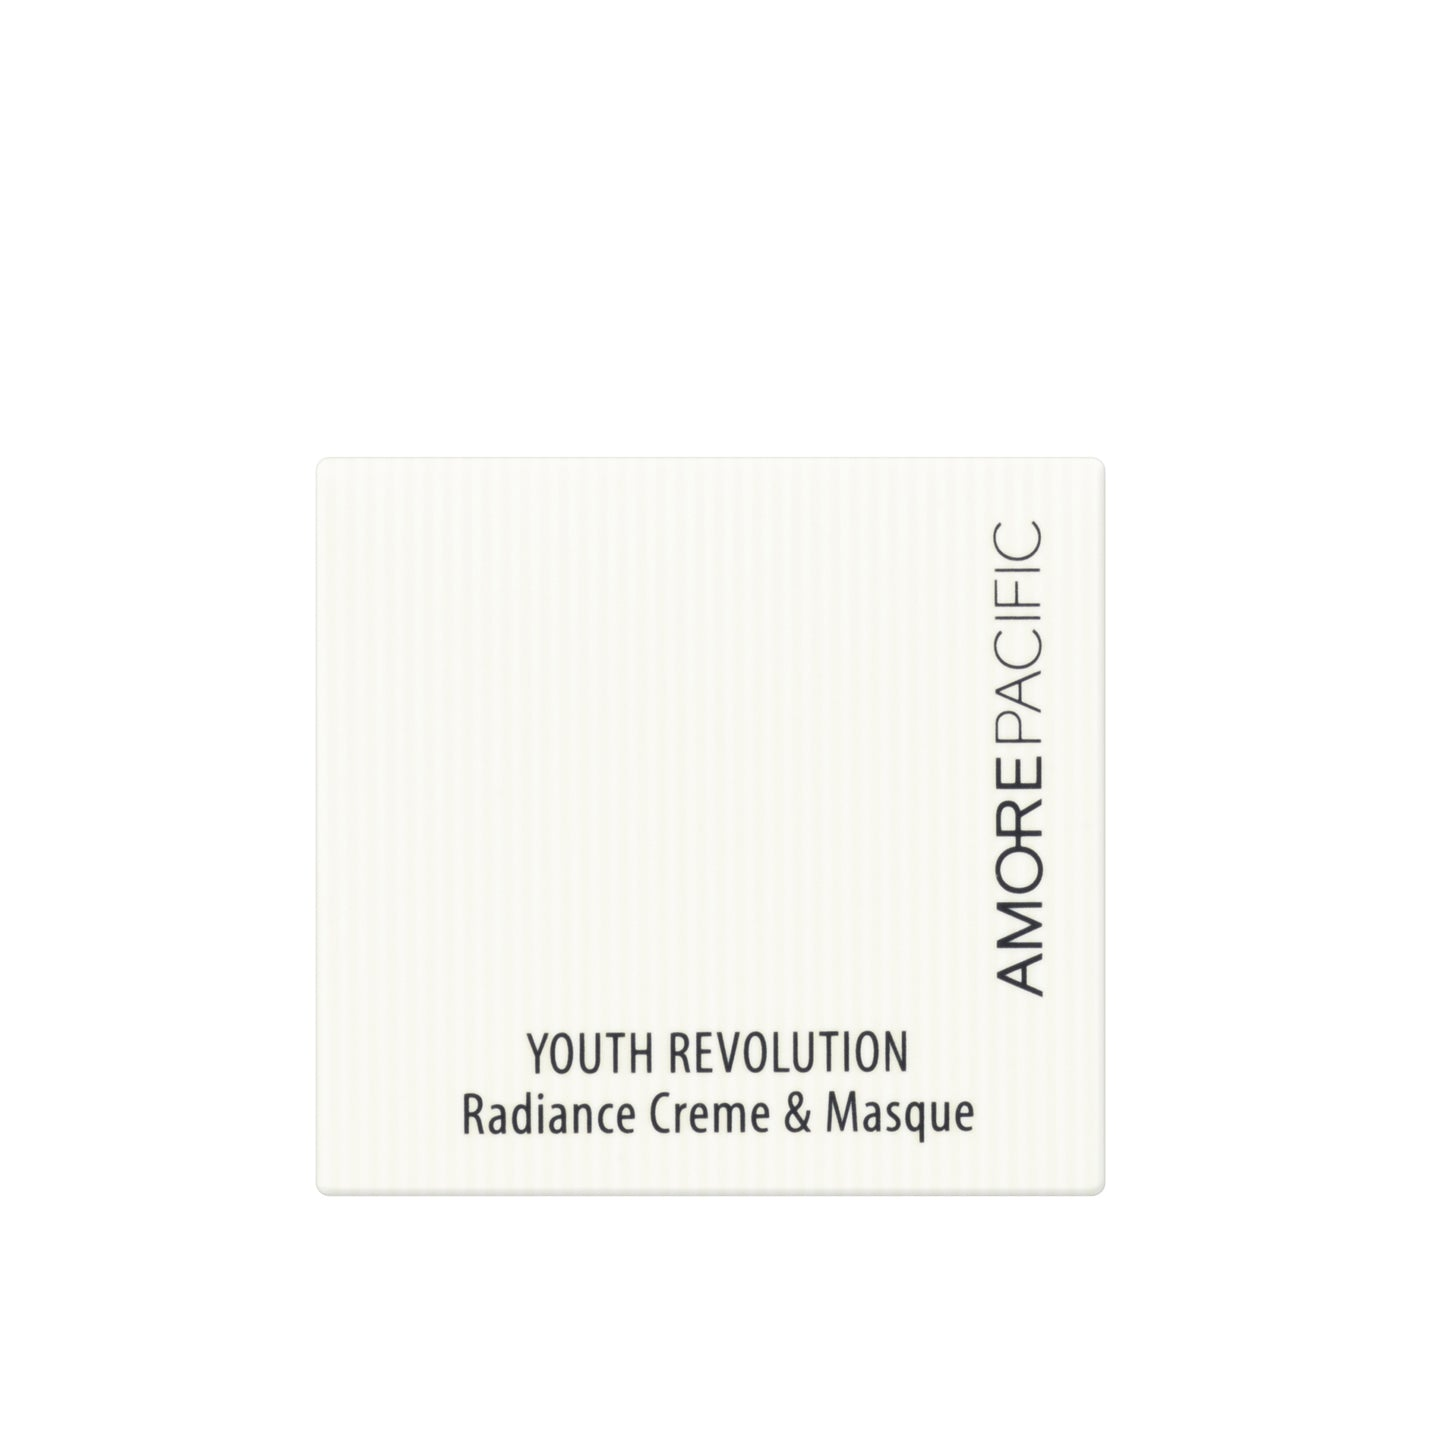 Youth Revolution Radiance Creme & Masque (1ml)